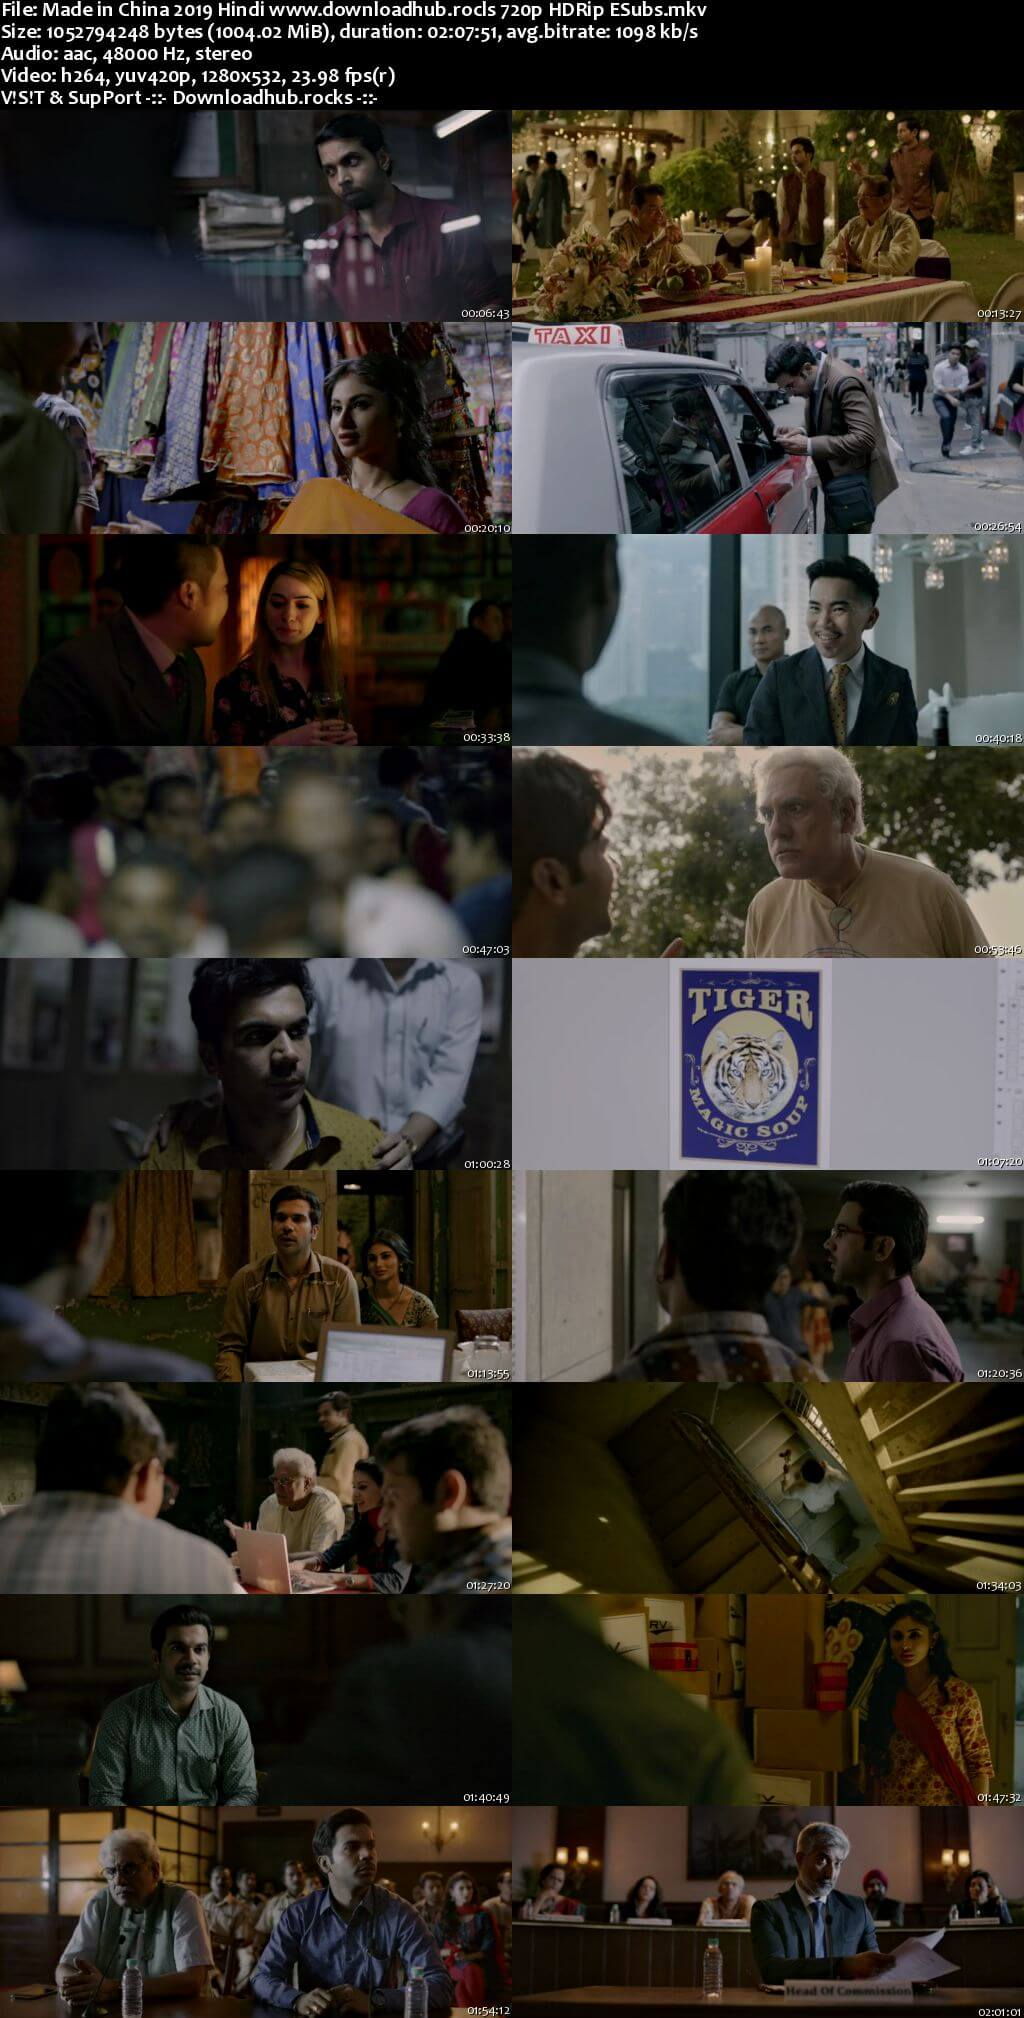 Made in China 2019 Hindi 720p HDRip ESubs